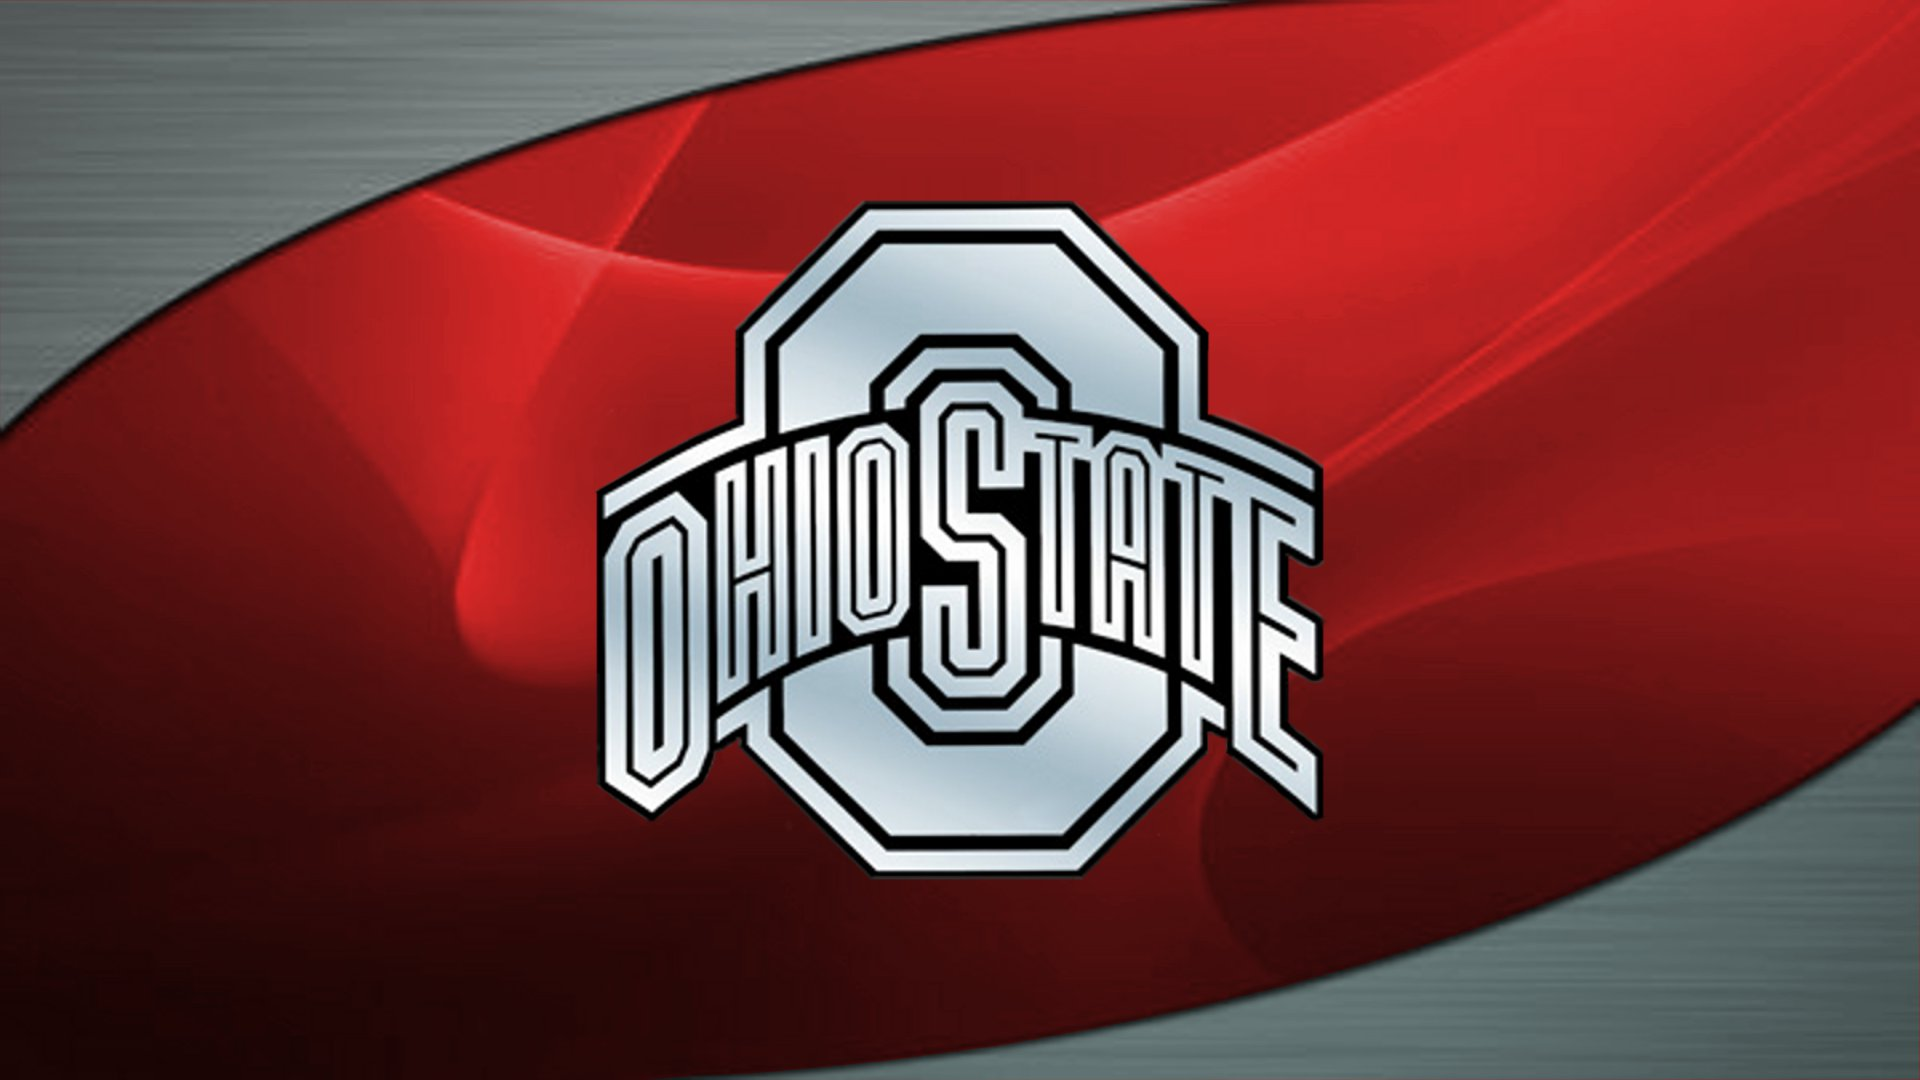 Ohio State National Champions Wallpaper 1920x1080